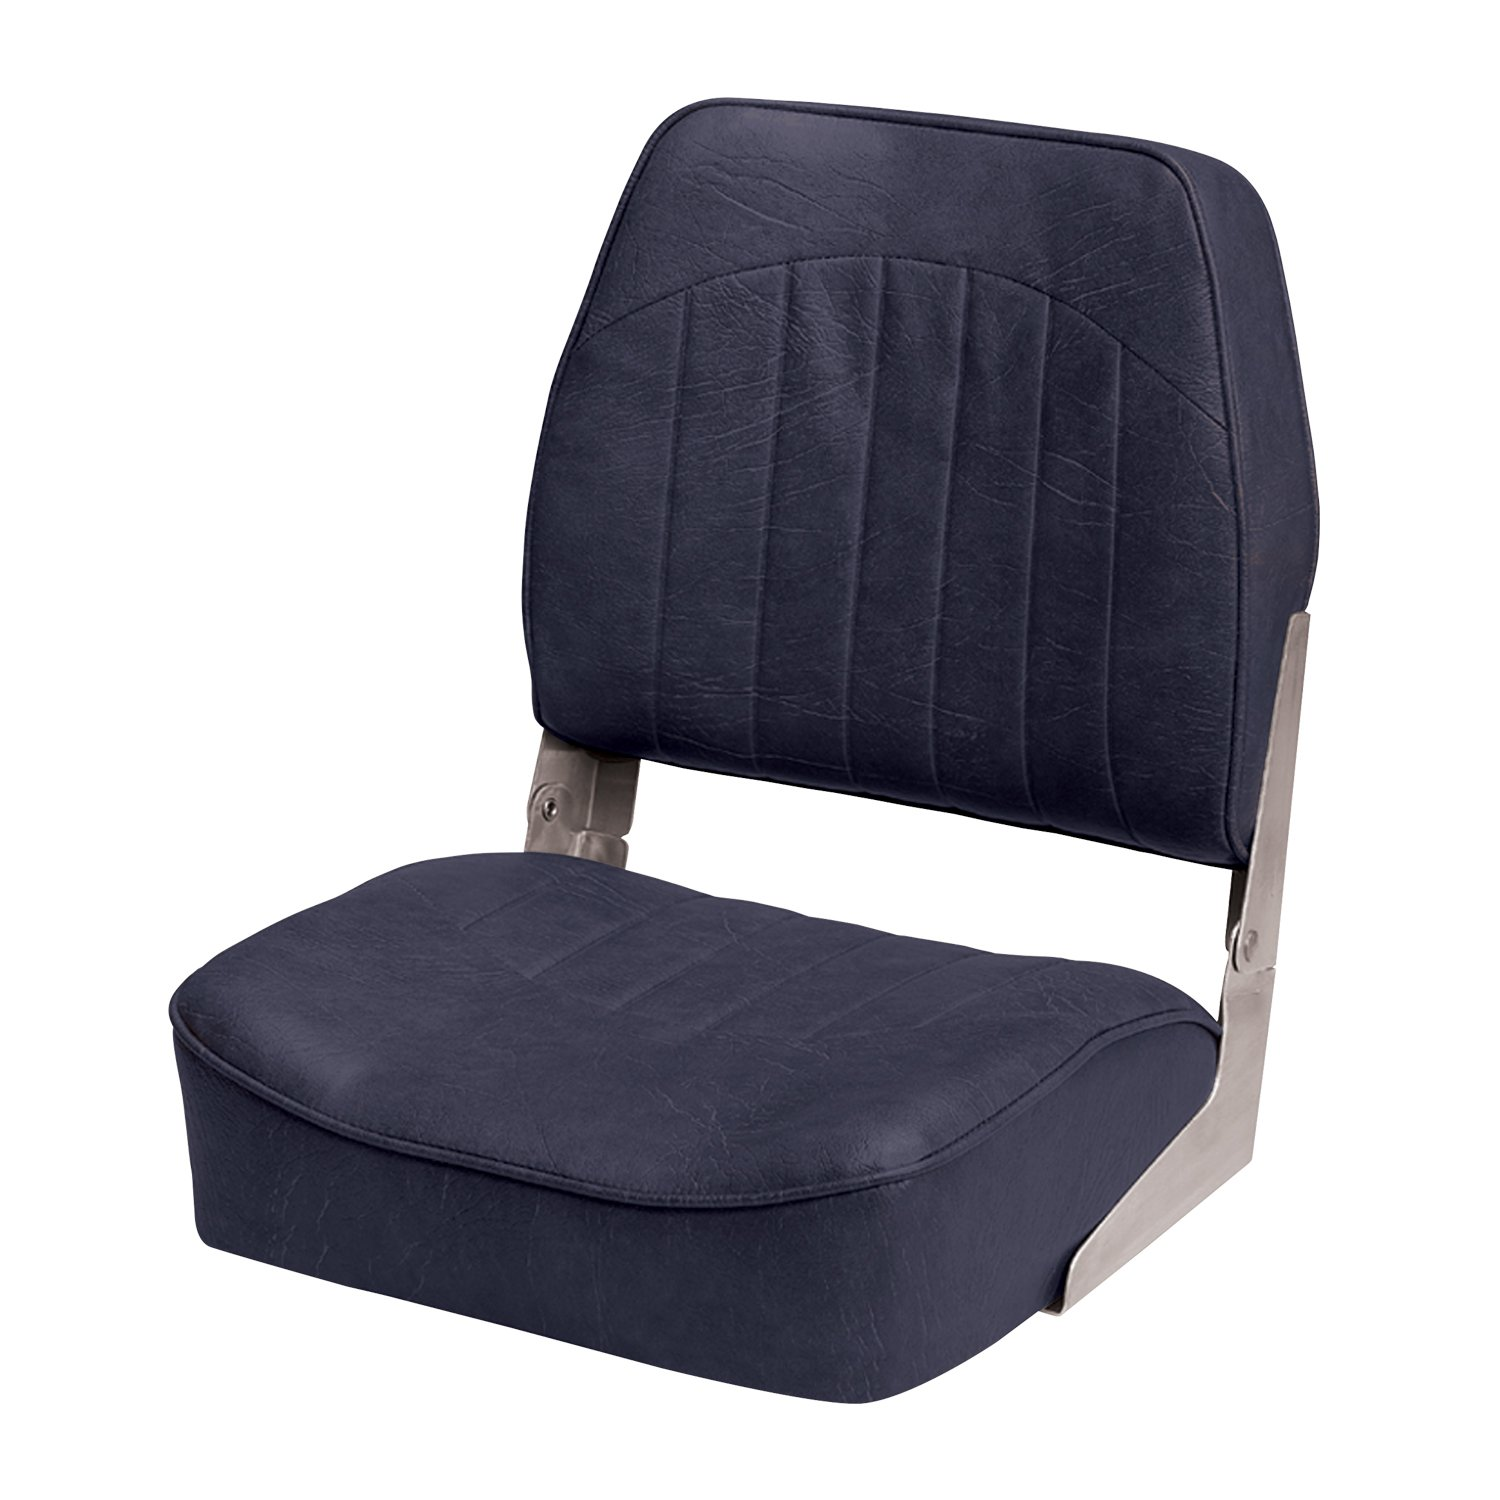 Wise 8WD734PLS-711 Low Back Boat Seat, Navy